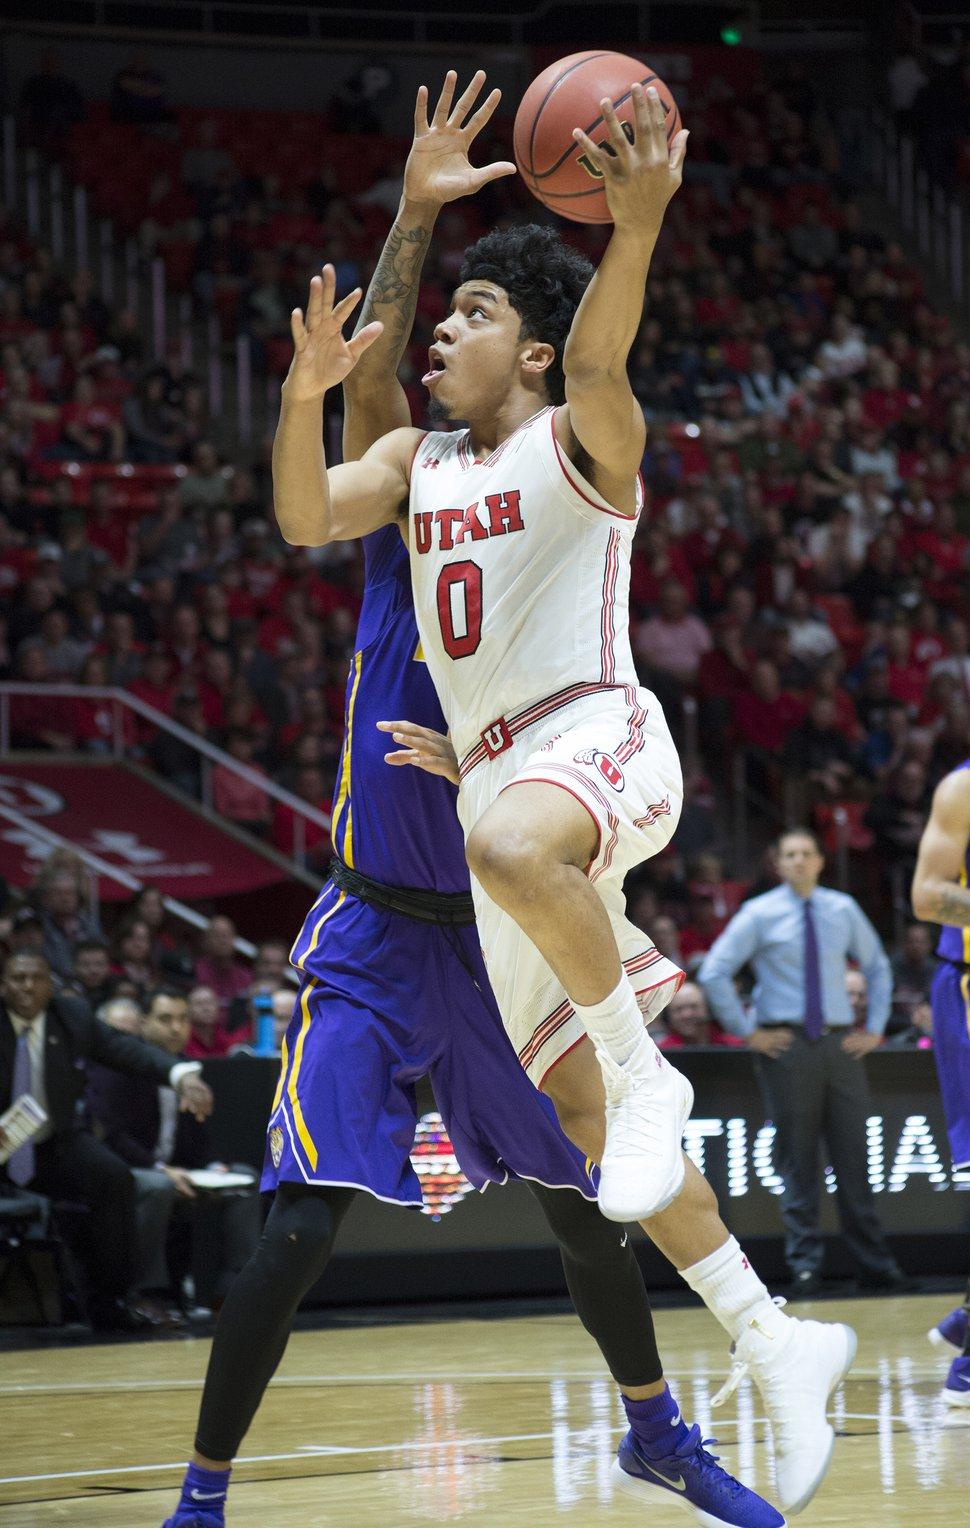 (Rick Egan | The Salt Lake Tribune) Utah Utes guard Sedrick Barefield (0) takes the ball to the hoop, in NIT playoff action between Utah Utes and LSU Tigers at the Jon M. Huntsman Center, Monday, March 19, 2018.